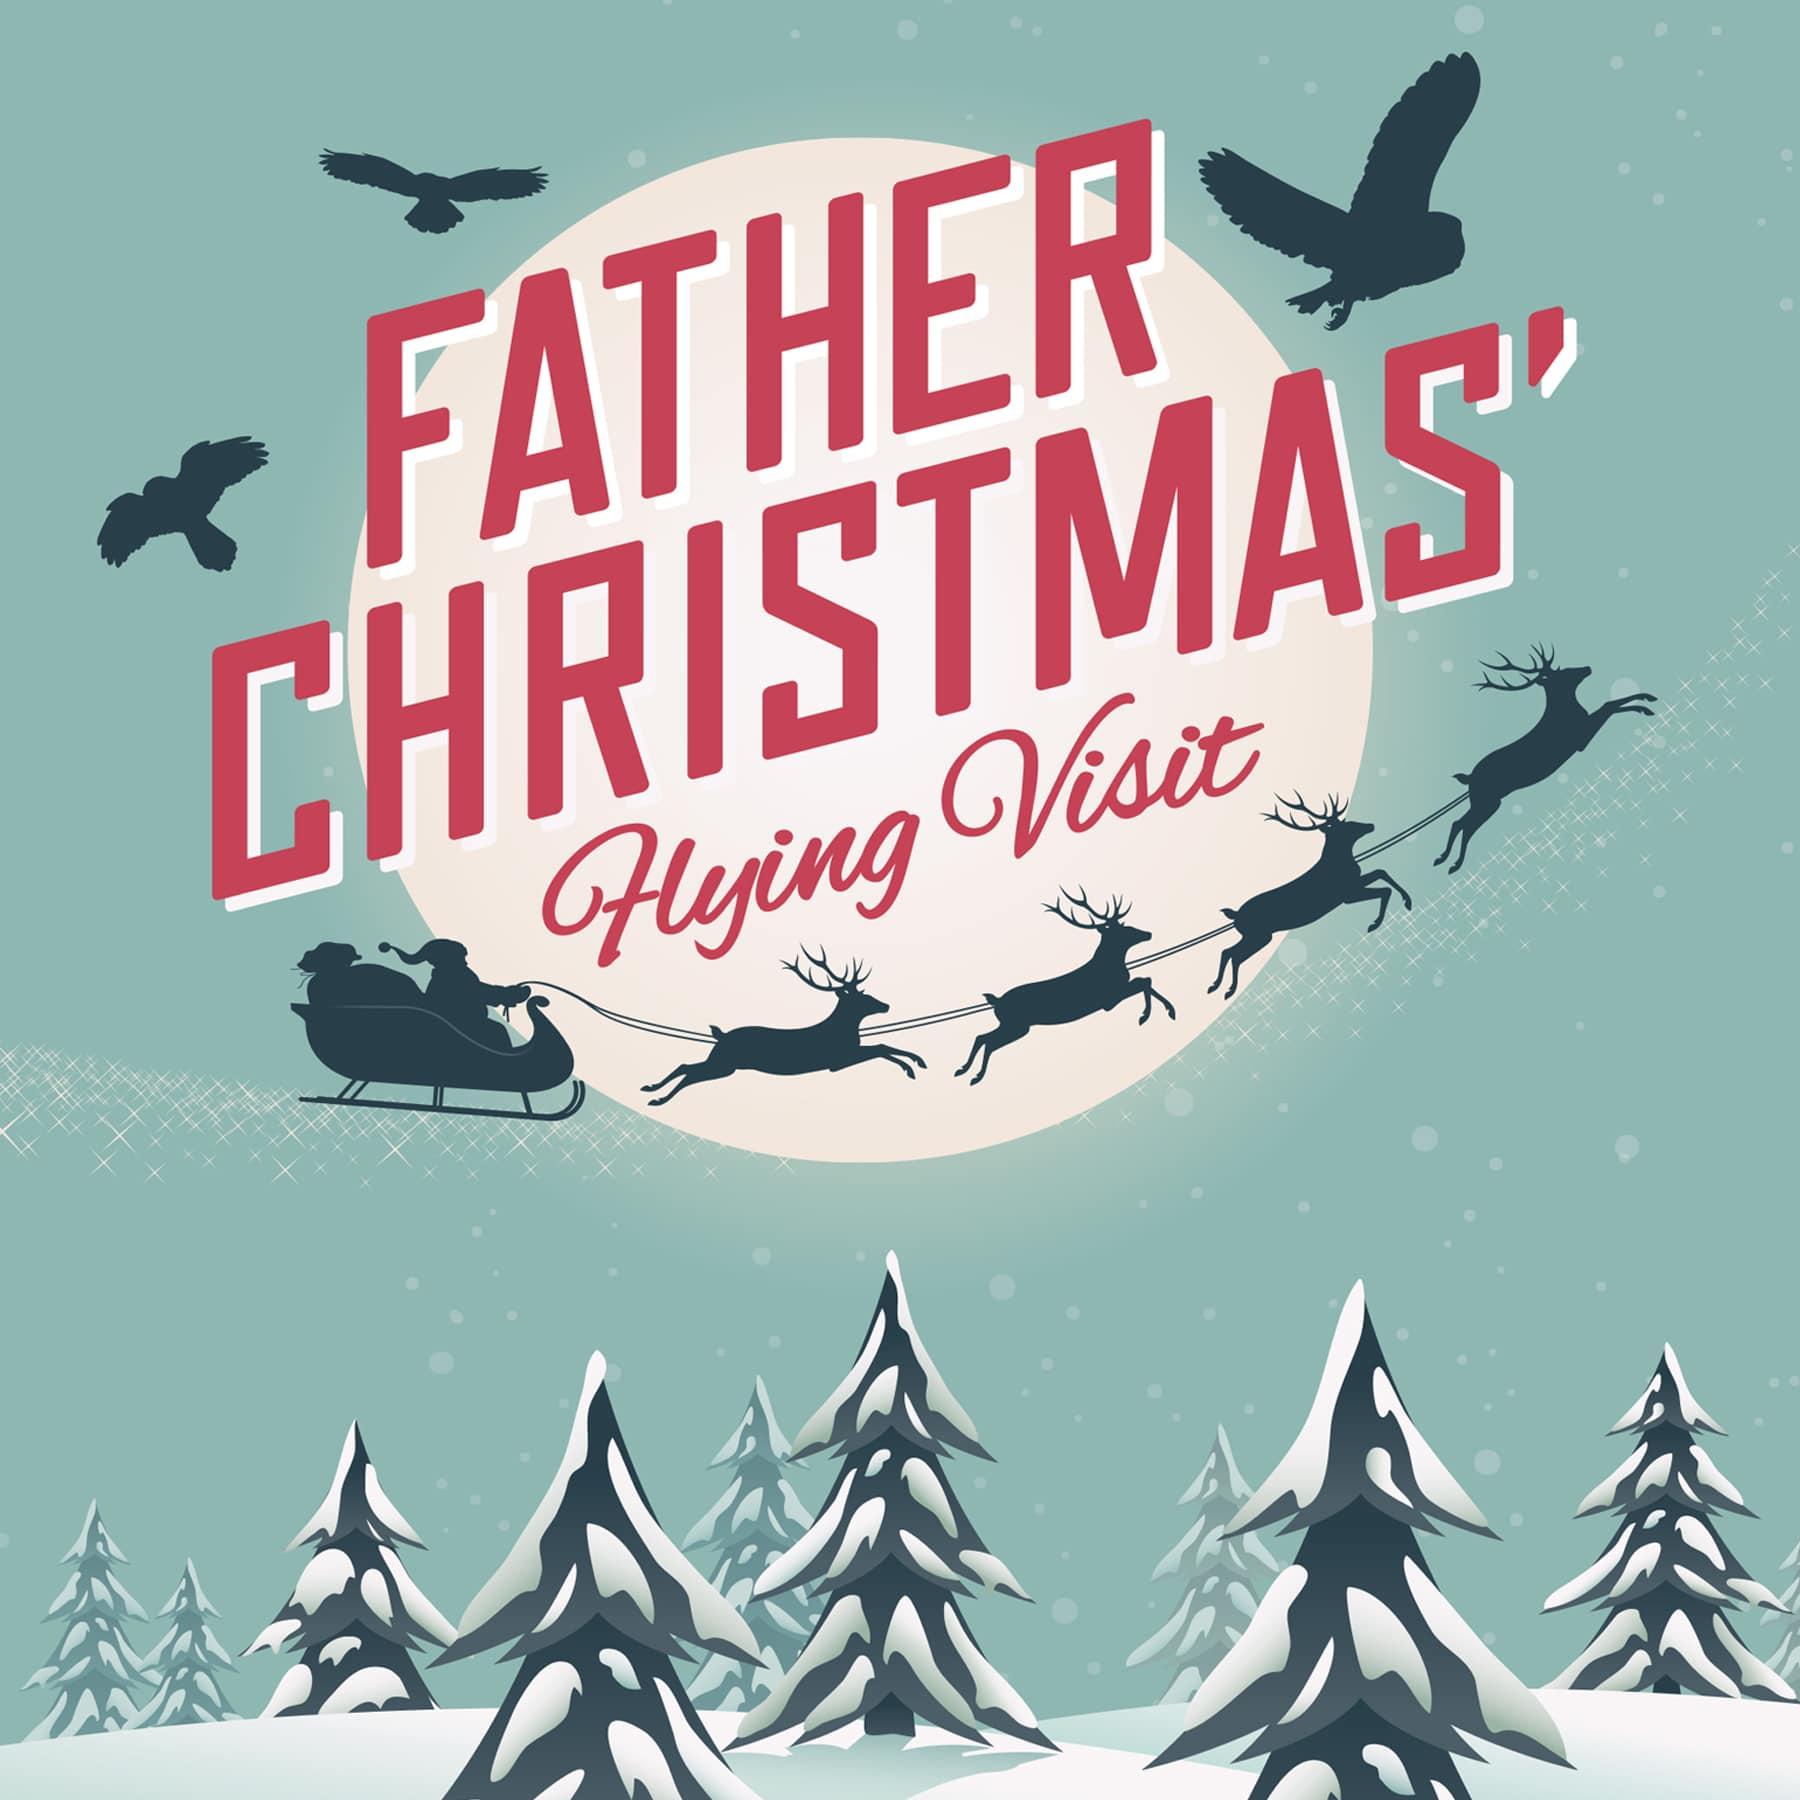 Father Christmas flying